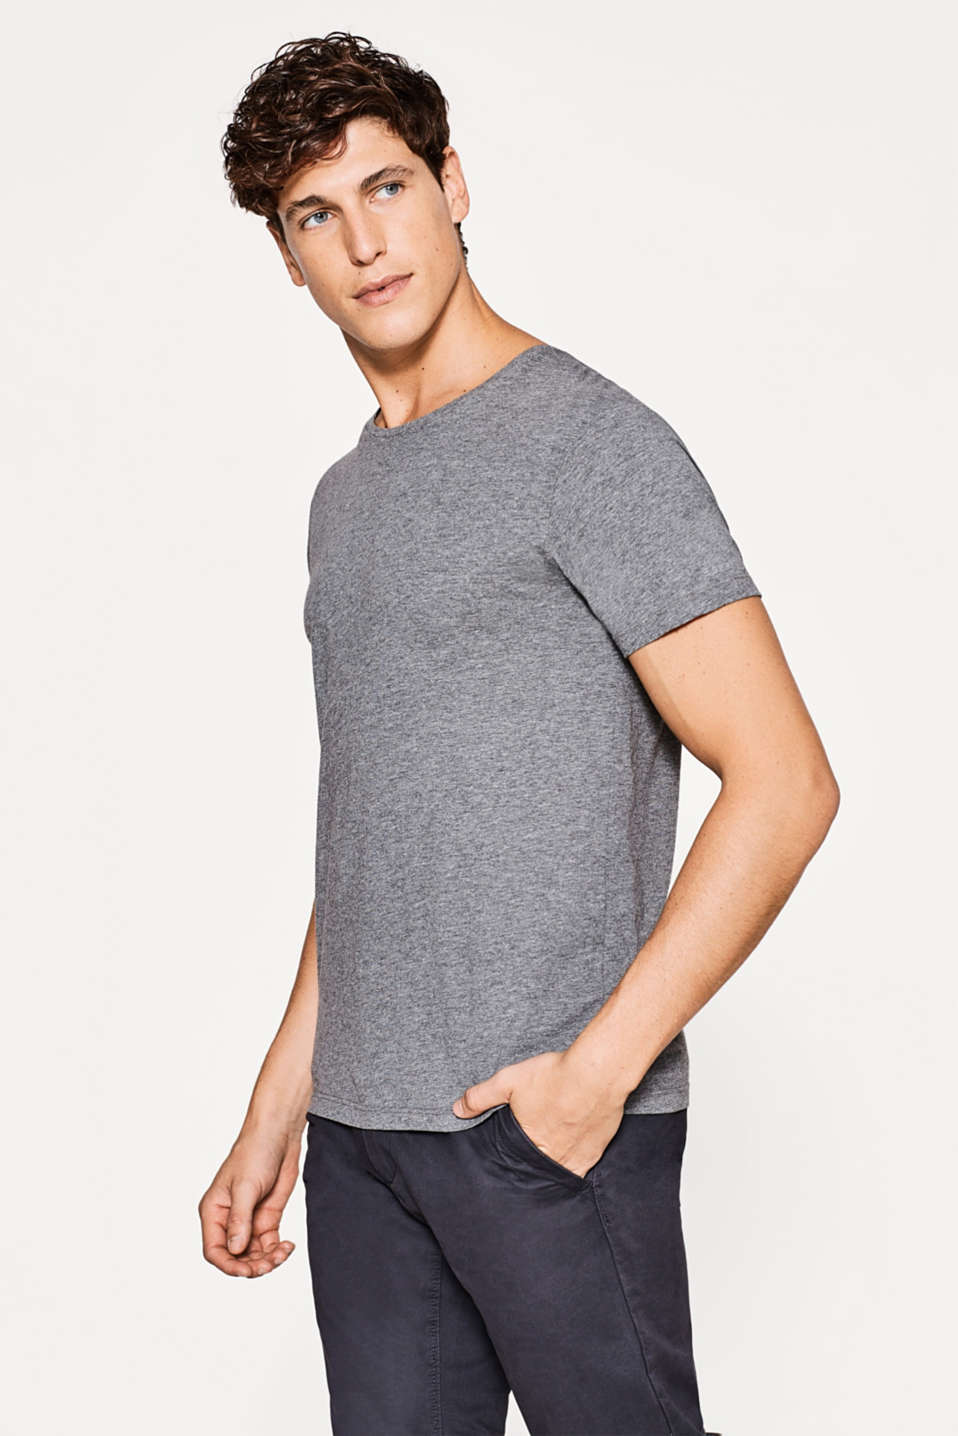 Esprit - Basic pure cotton jersey T-shirt